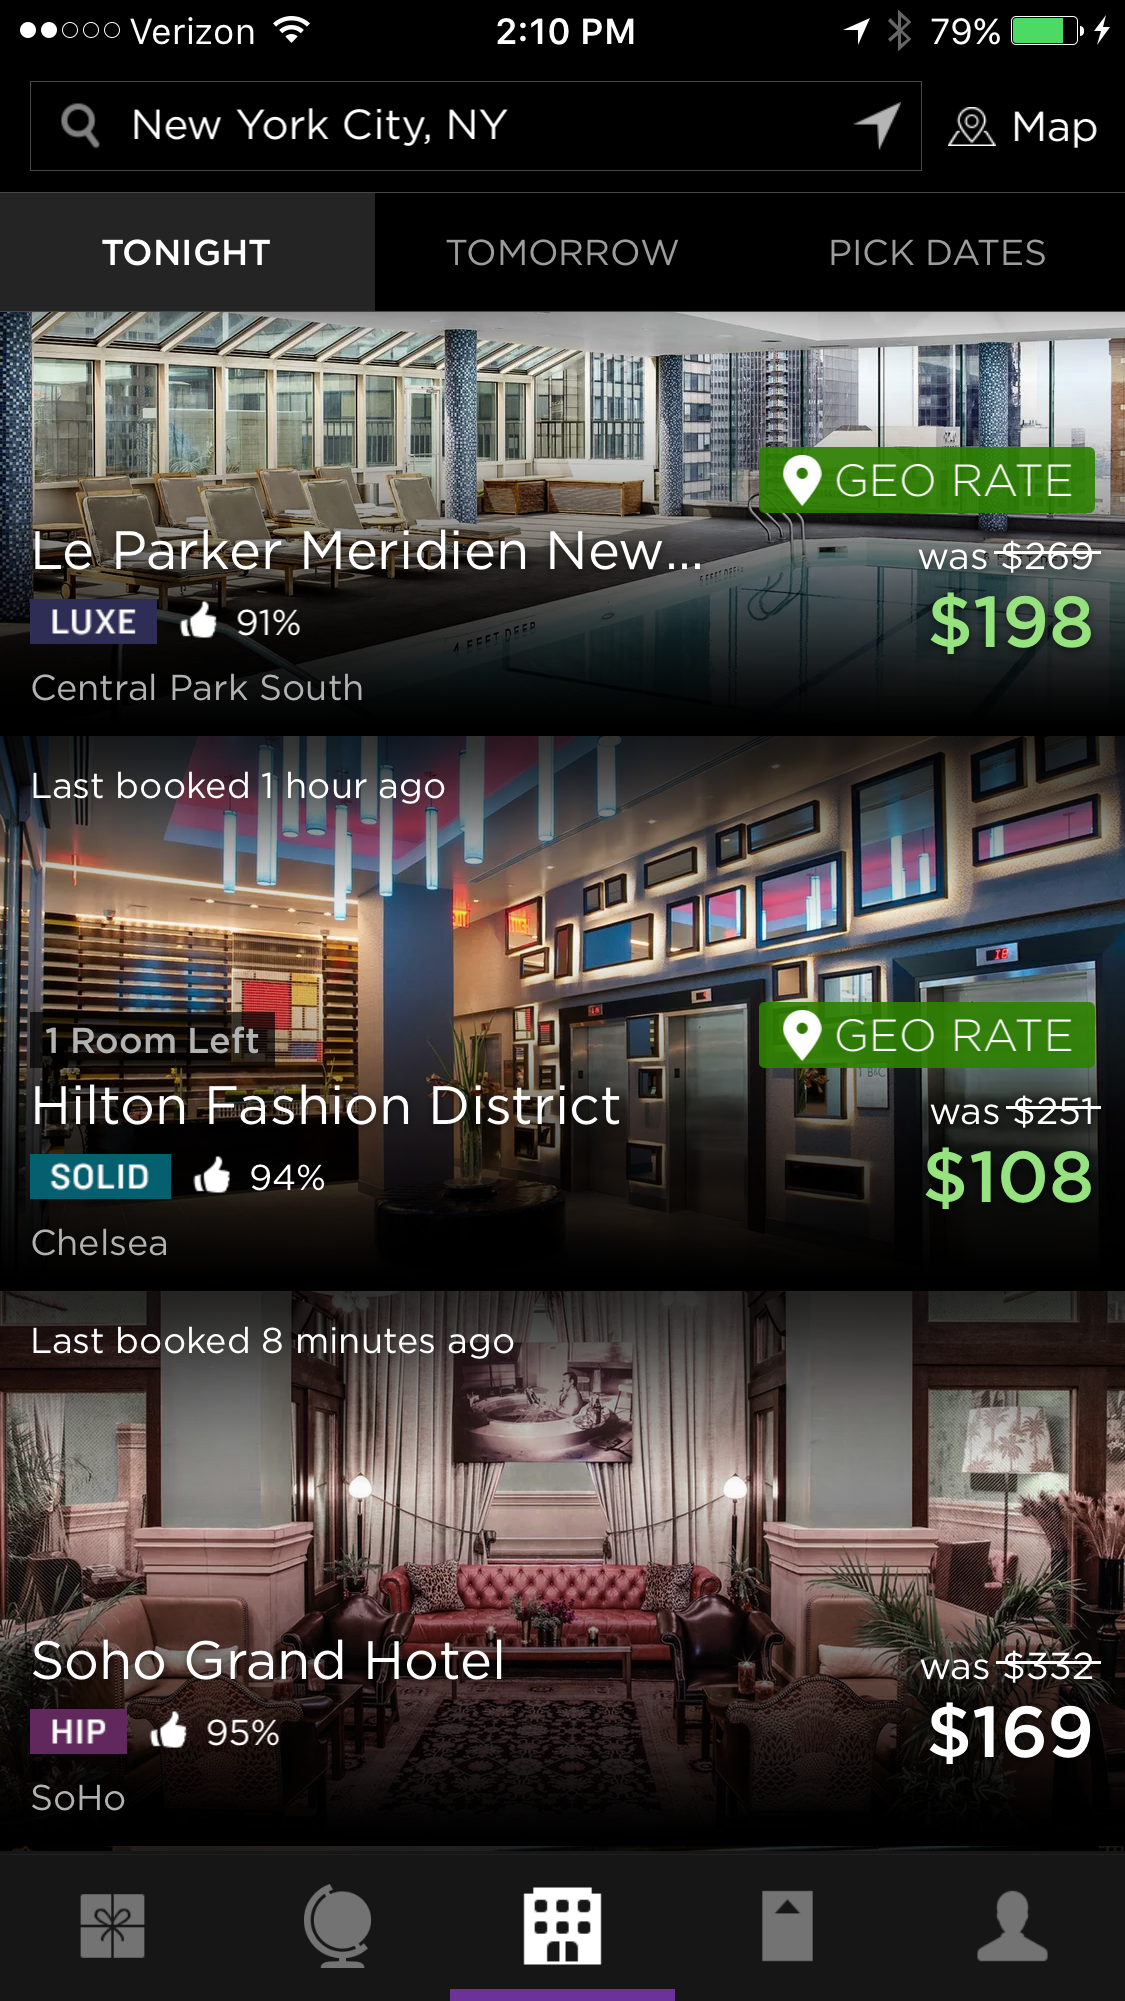 Hotels Tonight May Be Cheaper Than Staying Home | DigiDame